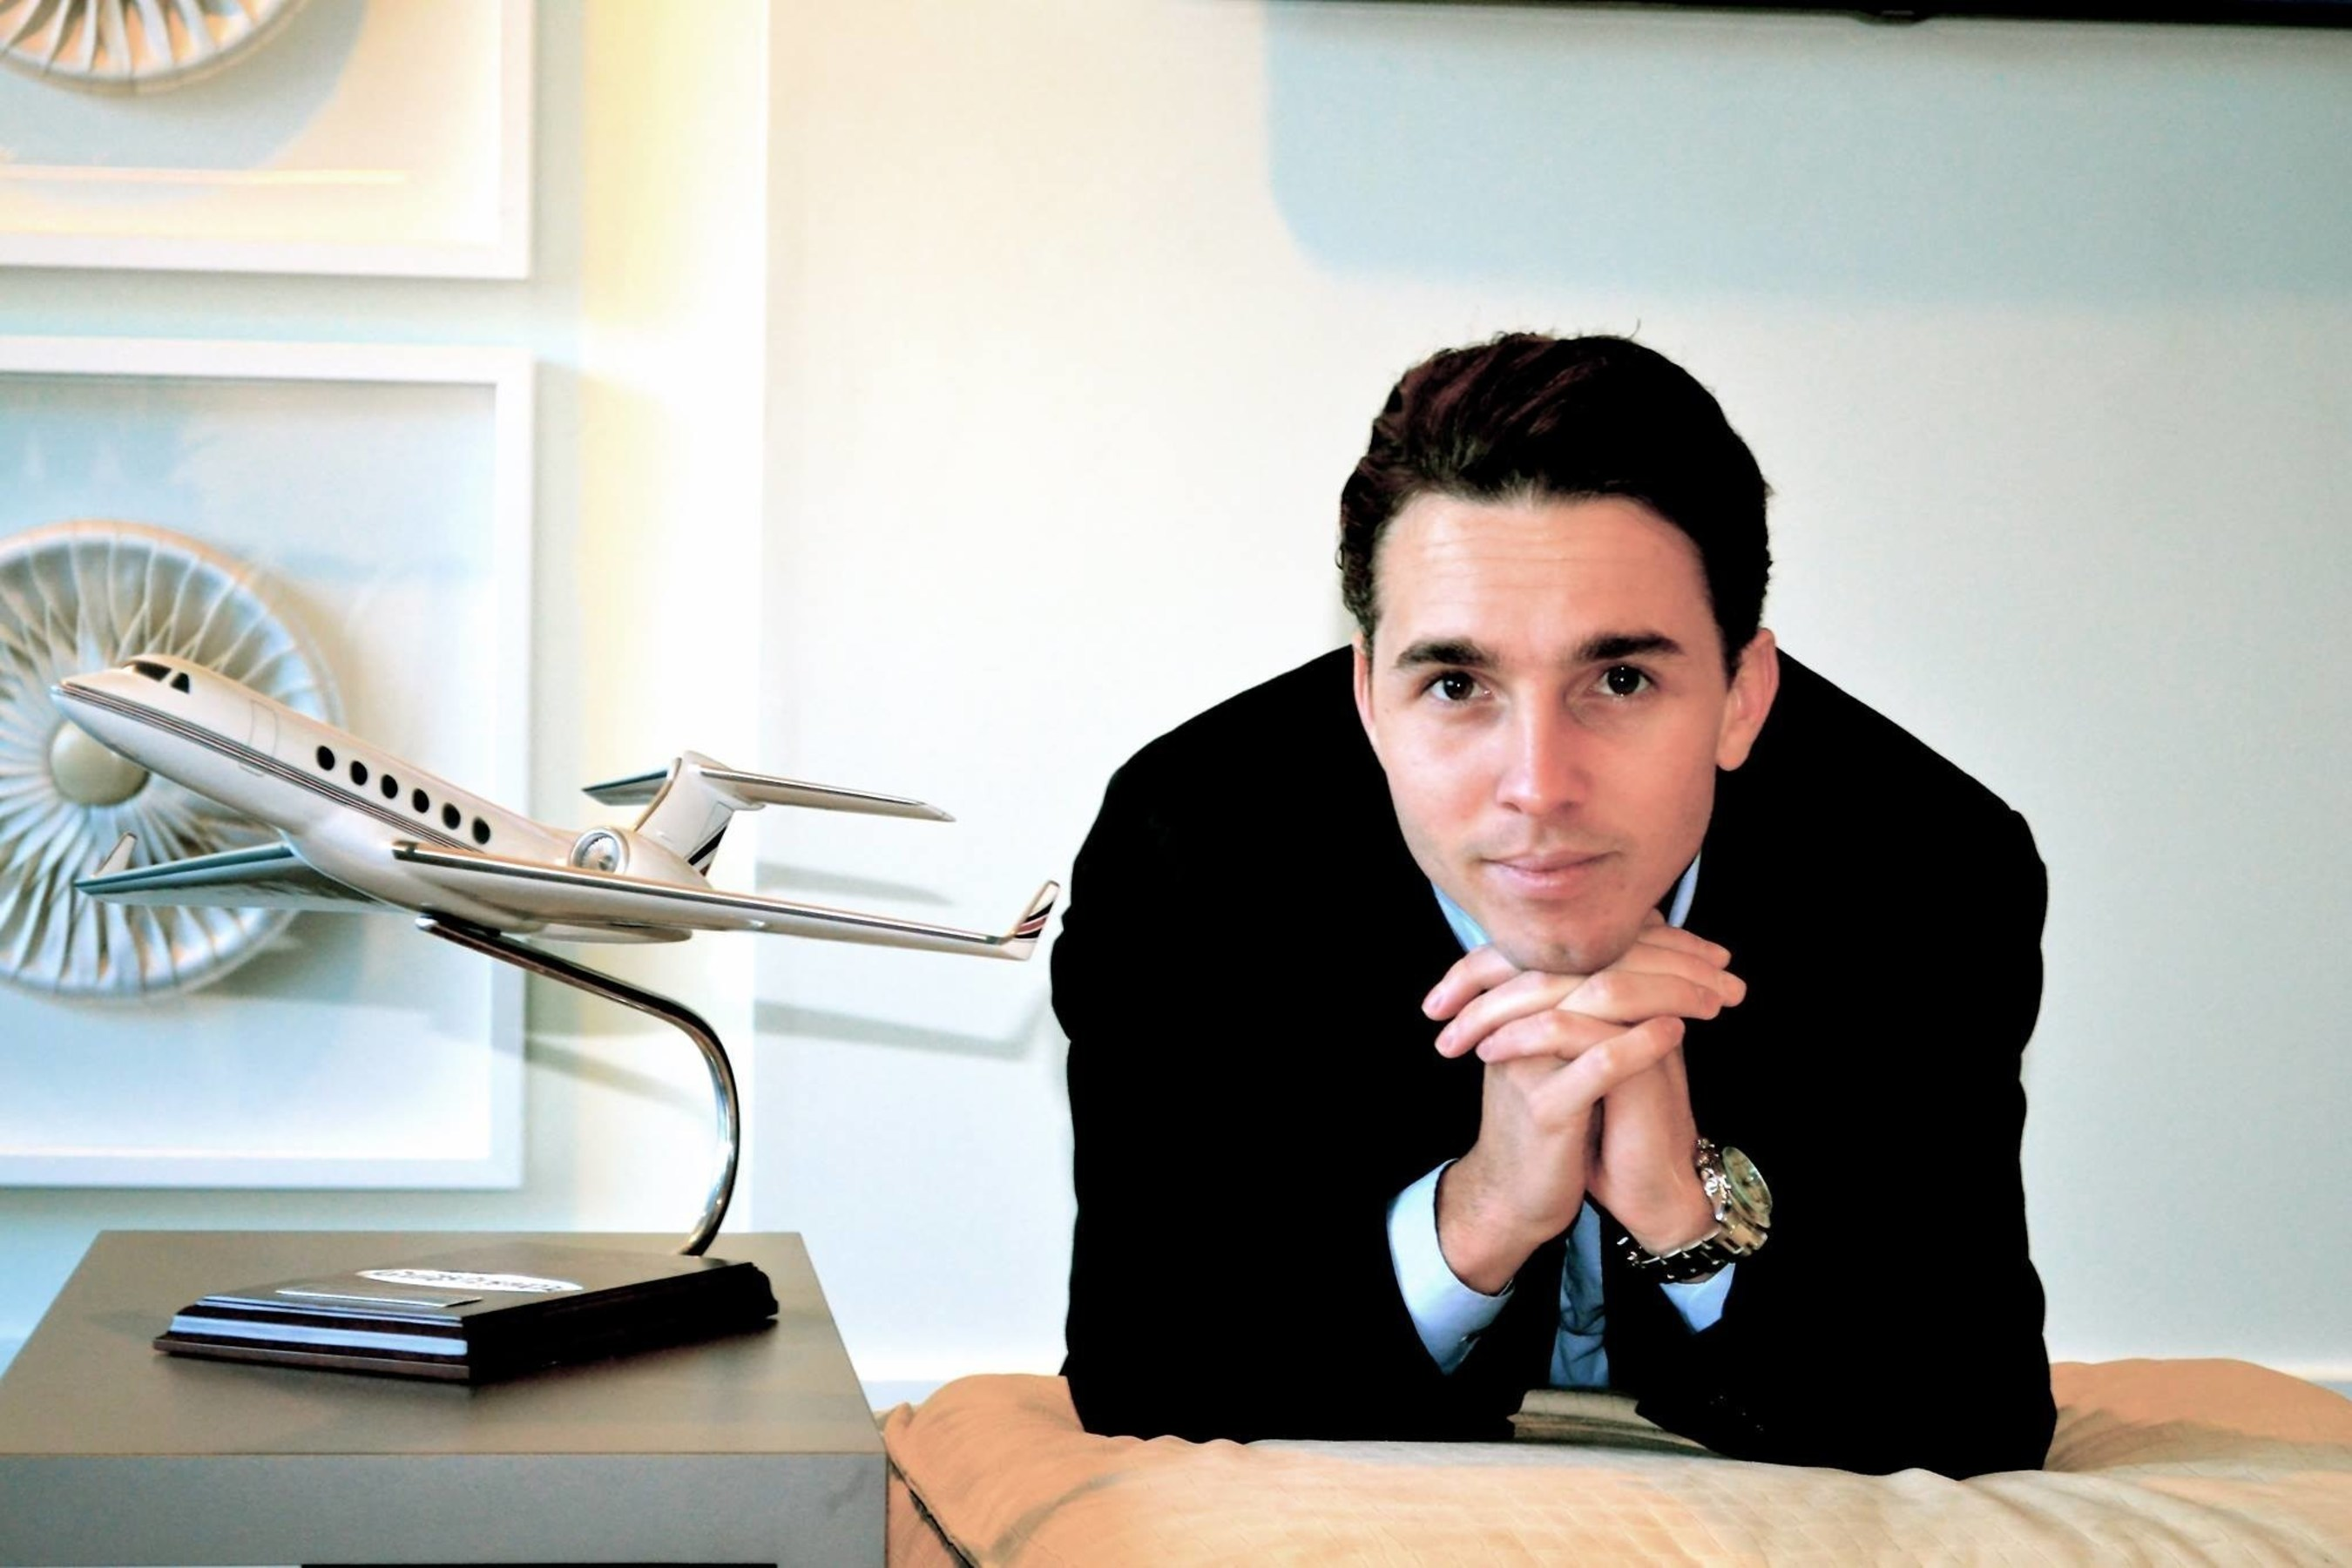 LA Based Non-Profit 'This Time Foundation' Elects Entrepreneur Hunter Gaylor to Its Board of